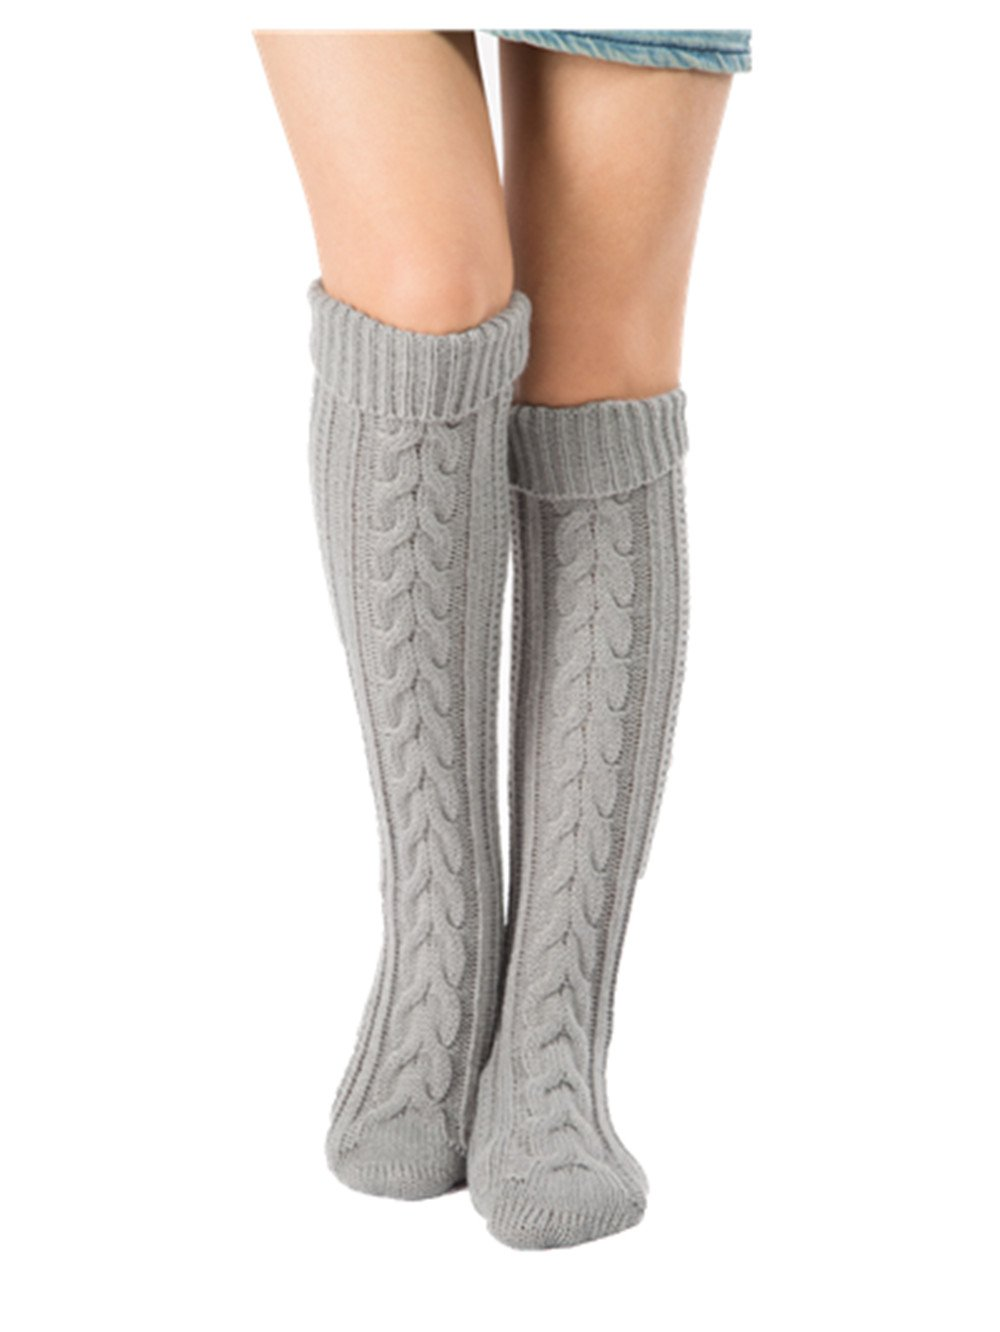 Centrawin Women's Winter Over Knee Knitted Crochet Leg Warmer Long Socks 4WZ149-color2